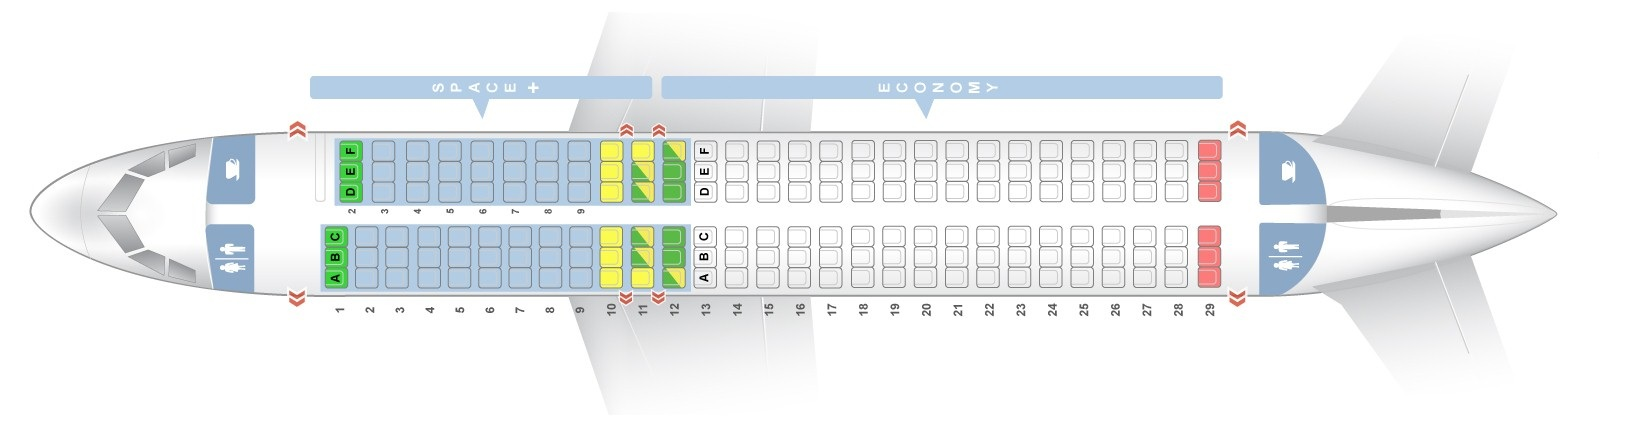 Seat map Airbus A320-200 Air New Zealand. Best seats in the plane